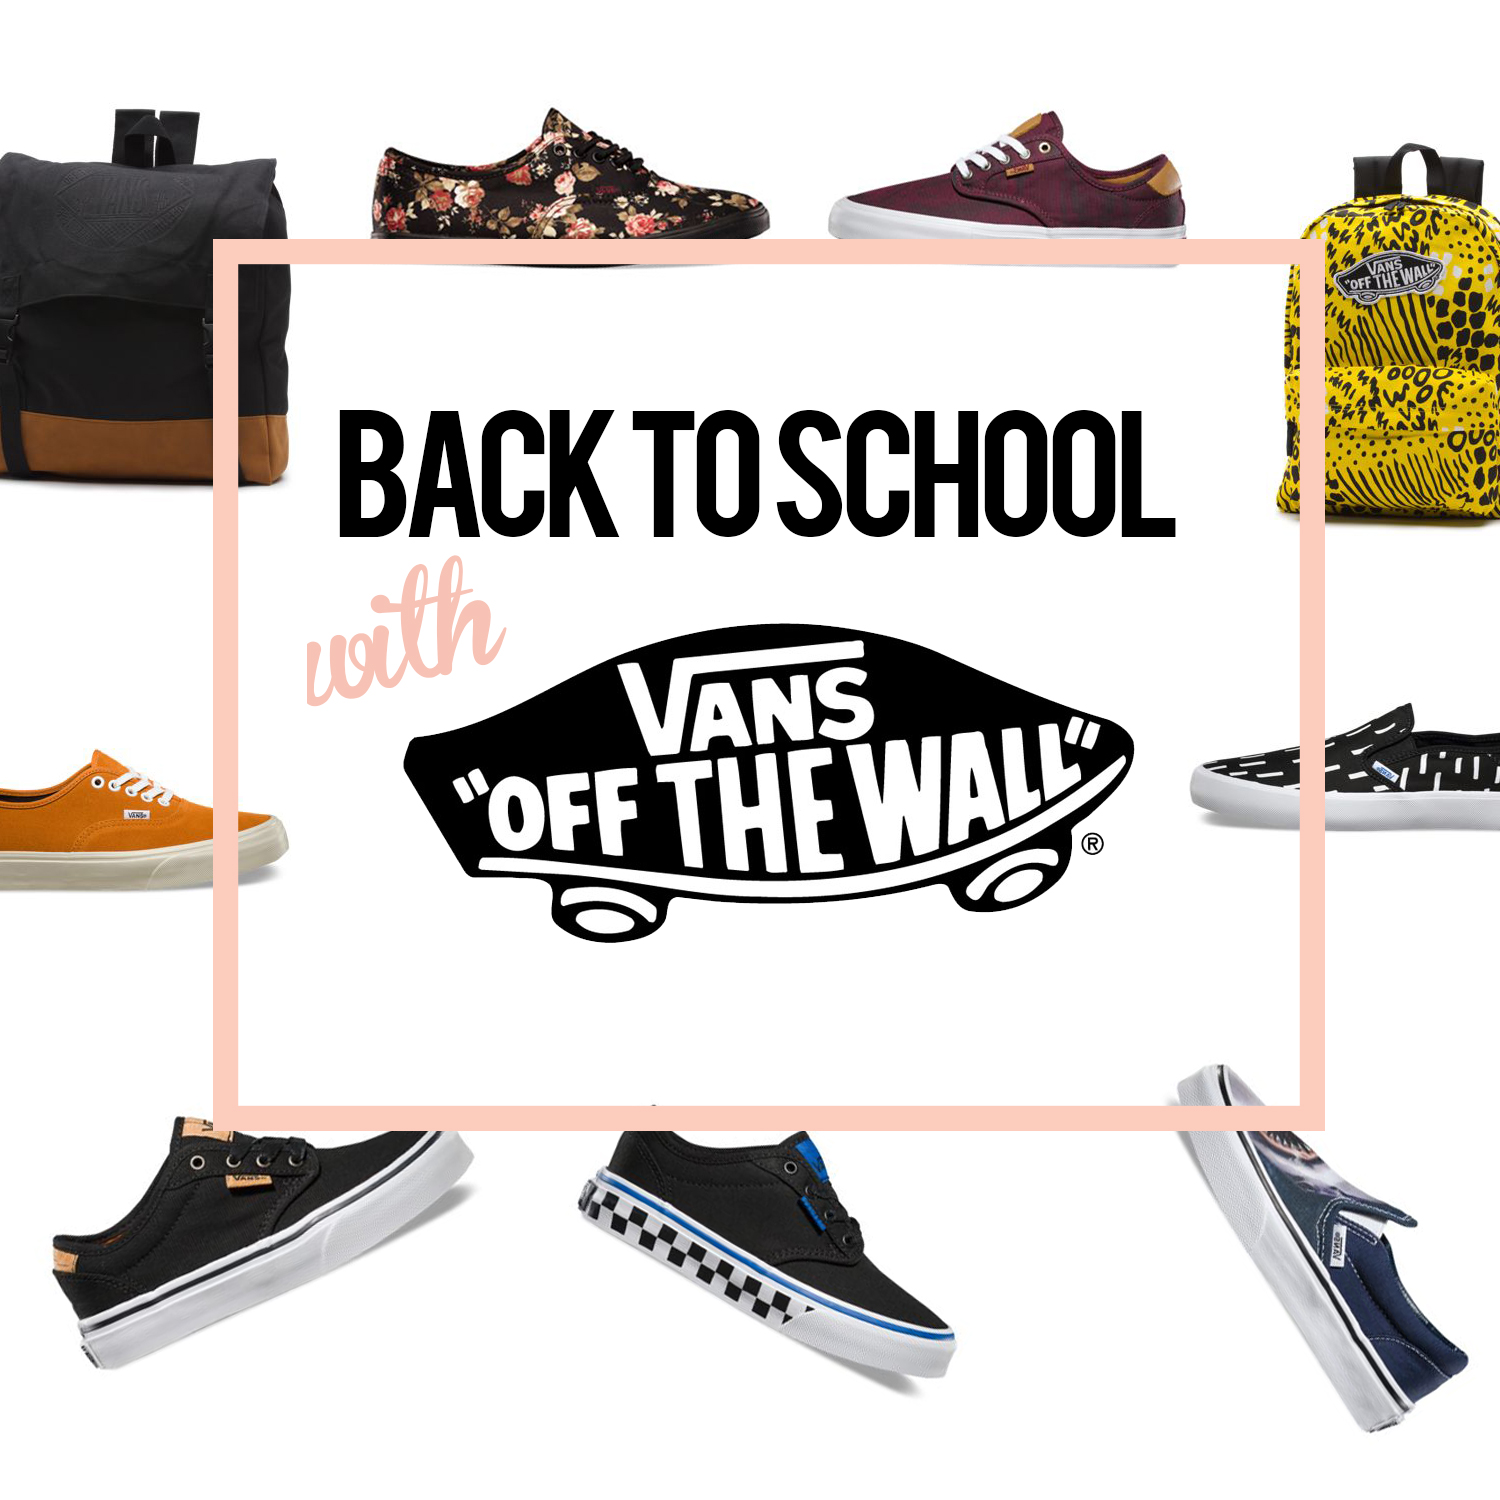 51ef97c7d3 Every year when we get ready to do back to school shopping